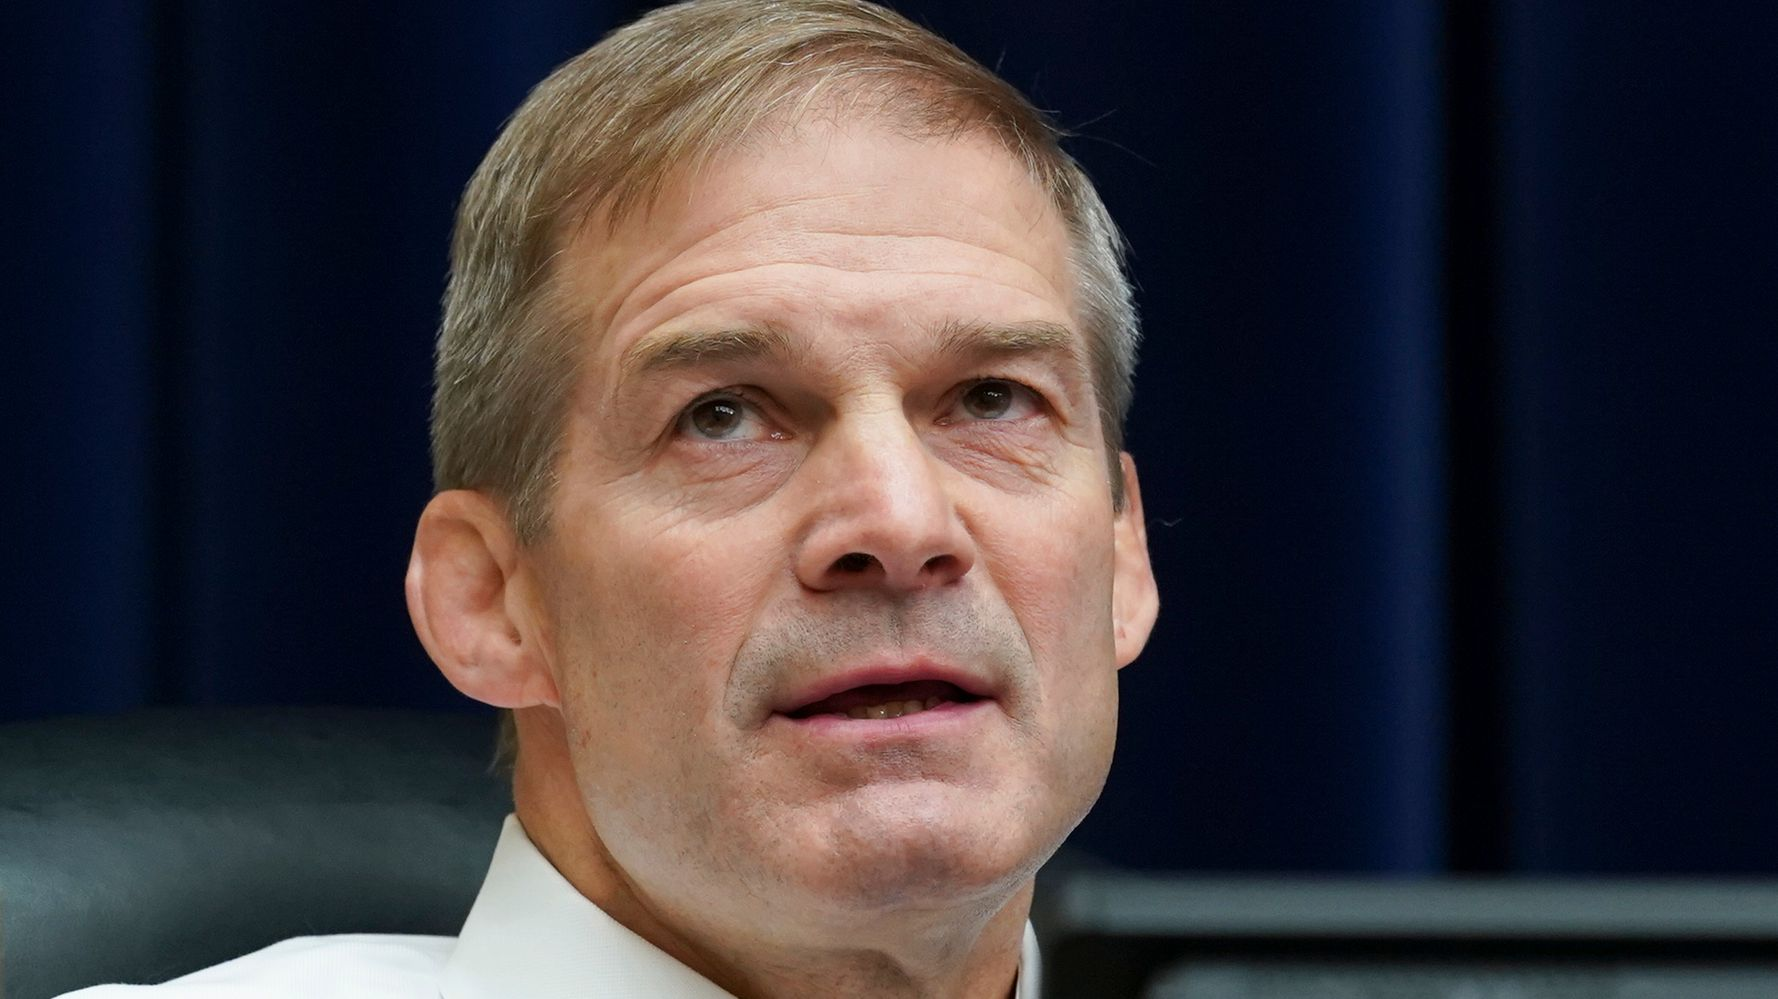 Jim Jordan Asked A Snarky Question About Masks And Twitter Users Did Not Hold Back